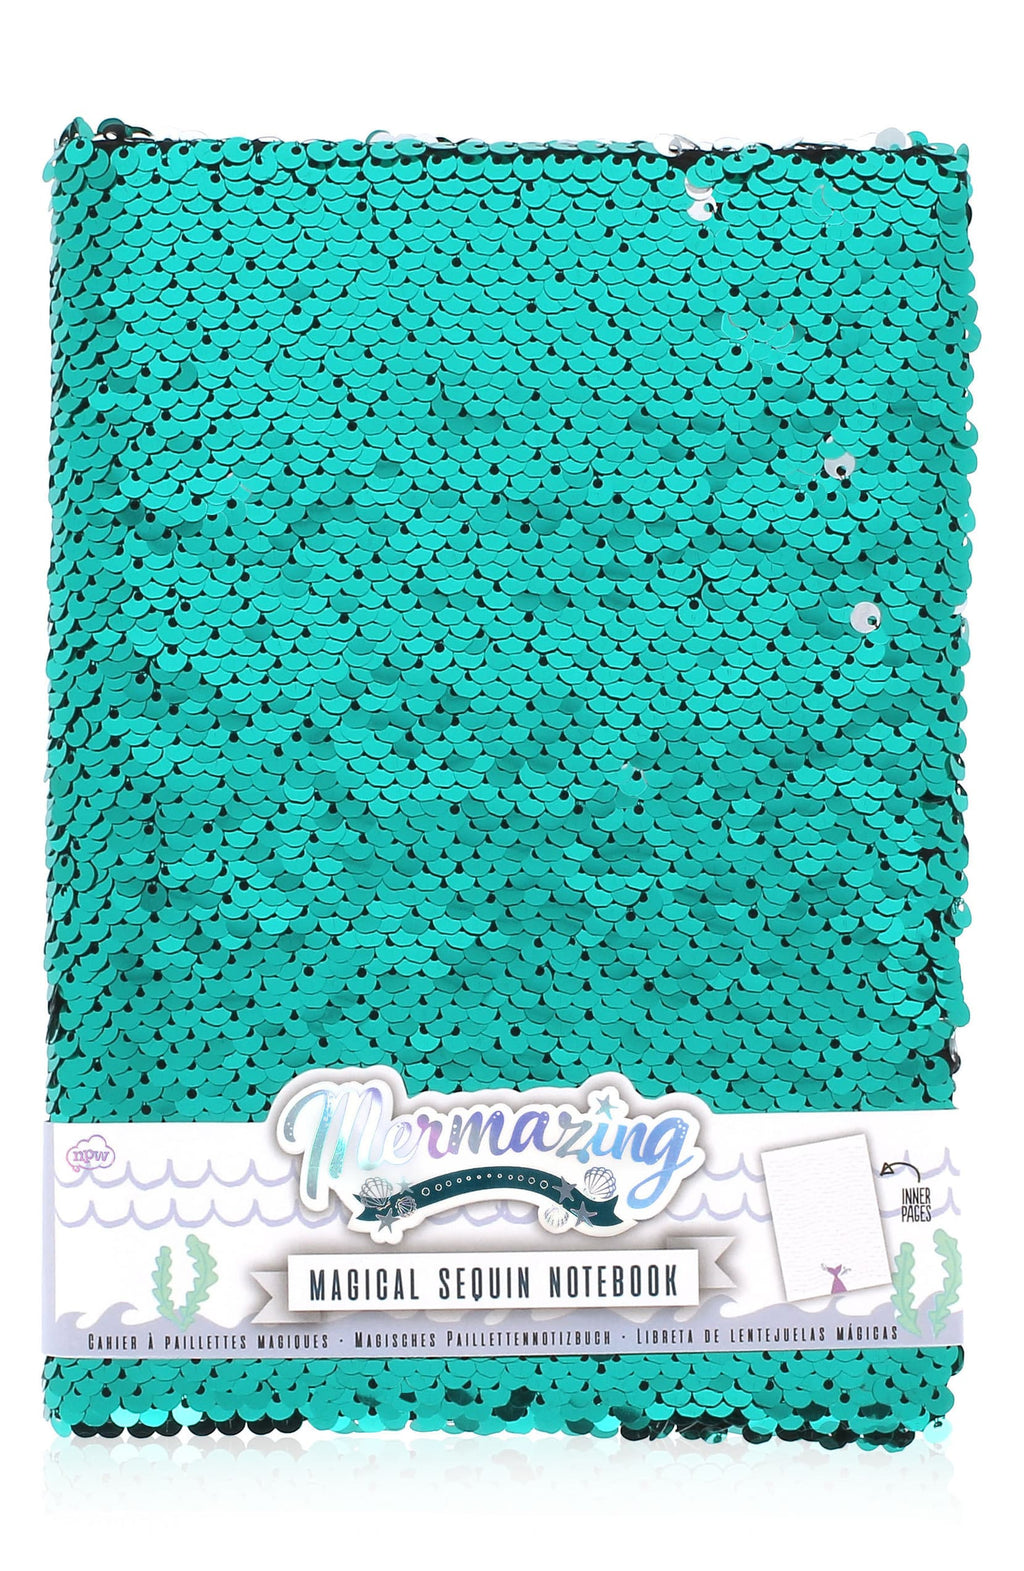 Mermazing Magical Sequin Notebook